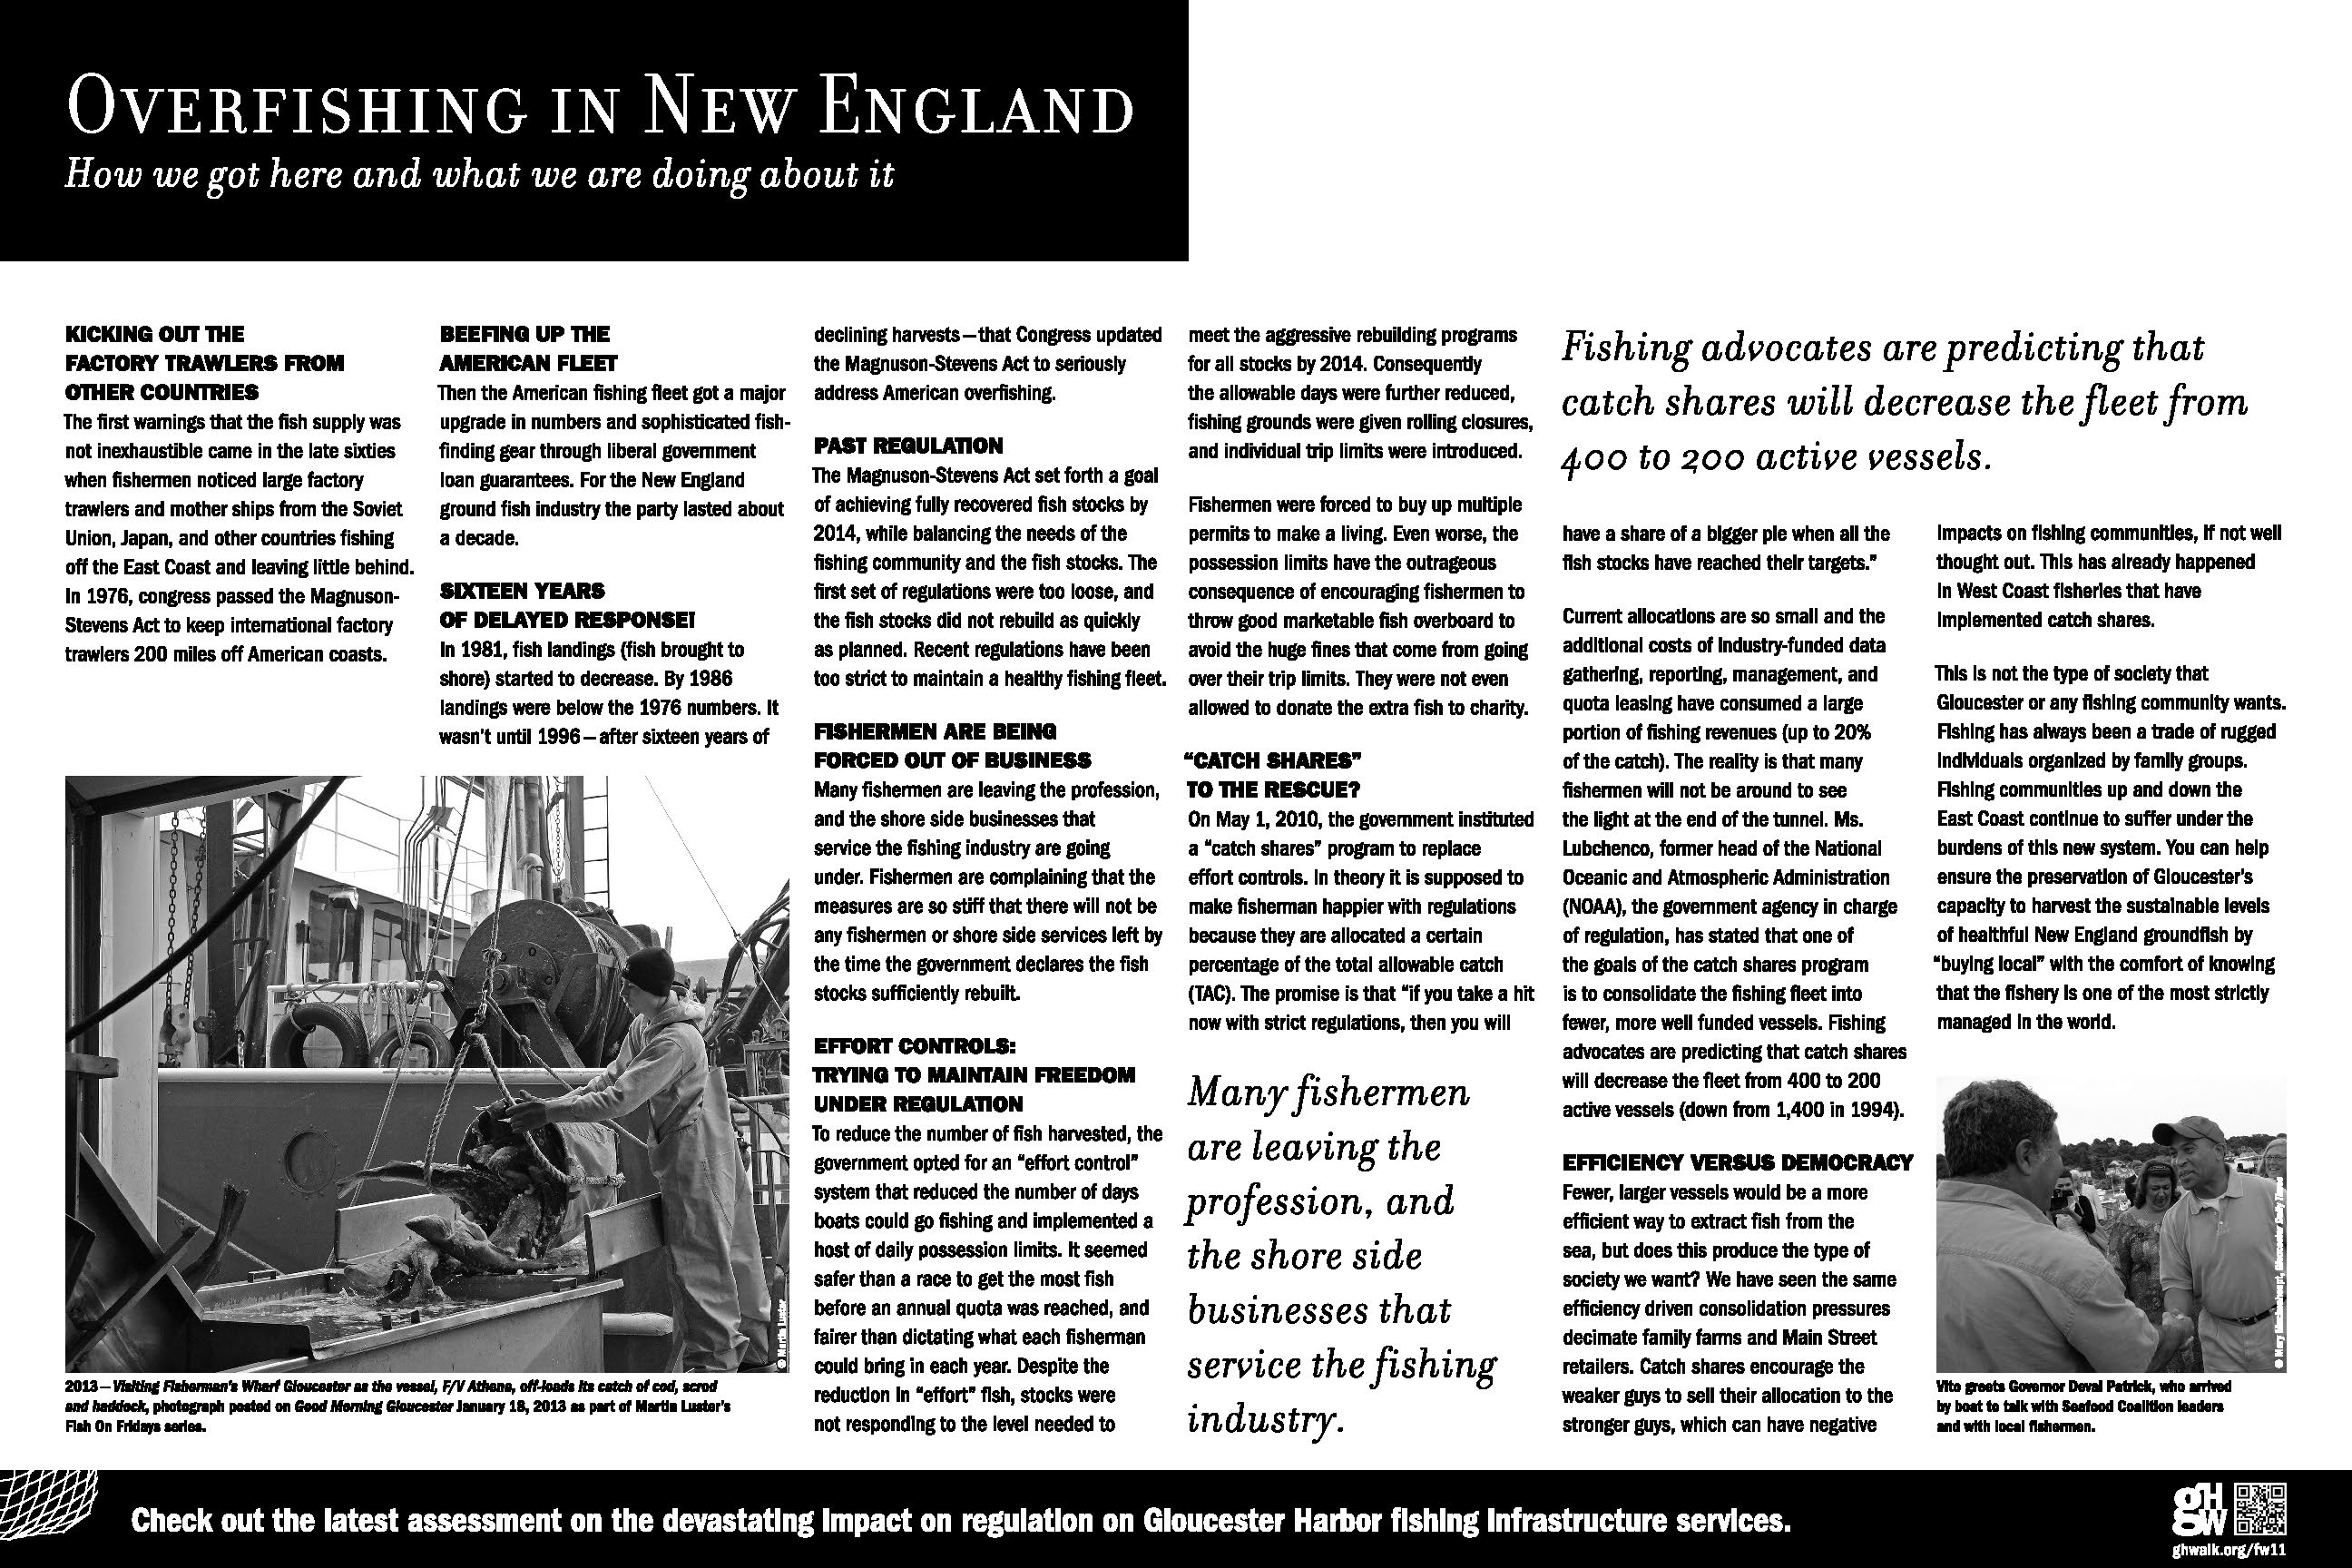 OVERFISHING IN NEW ENGLAND